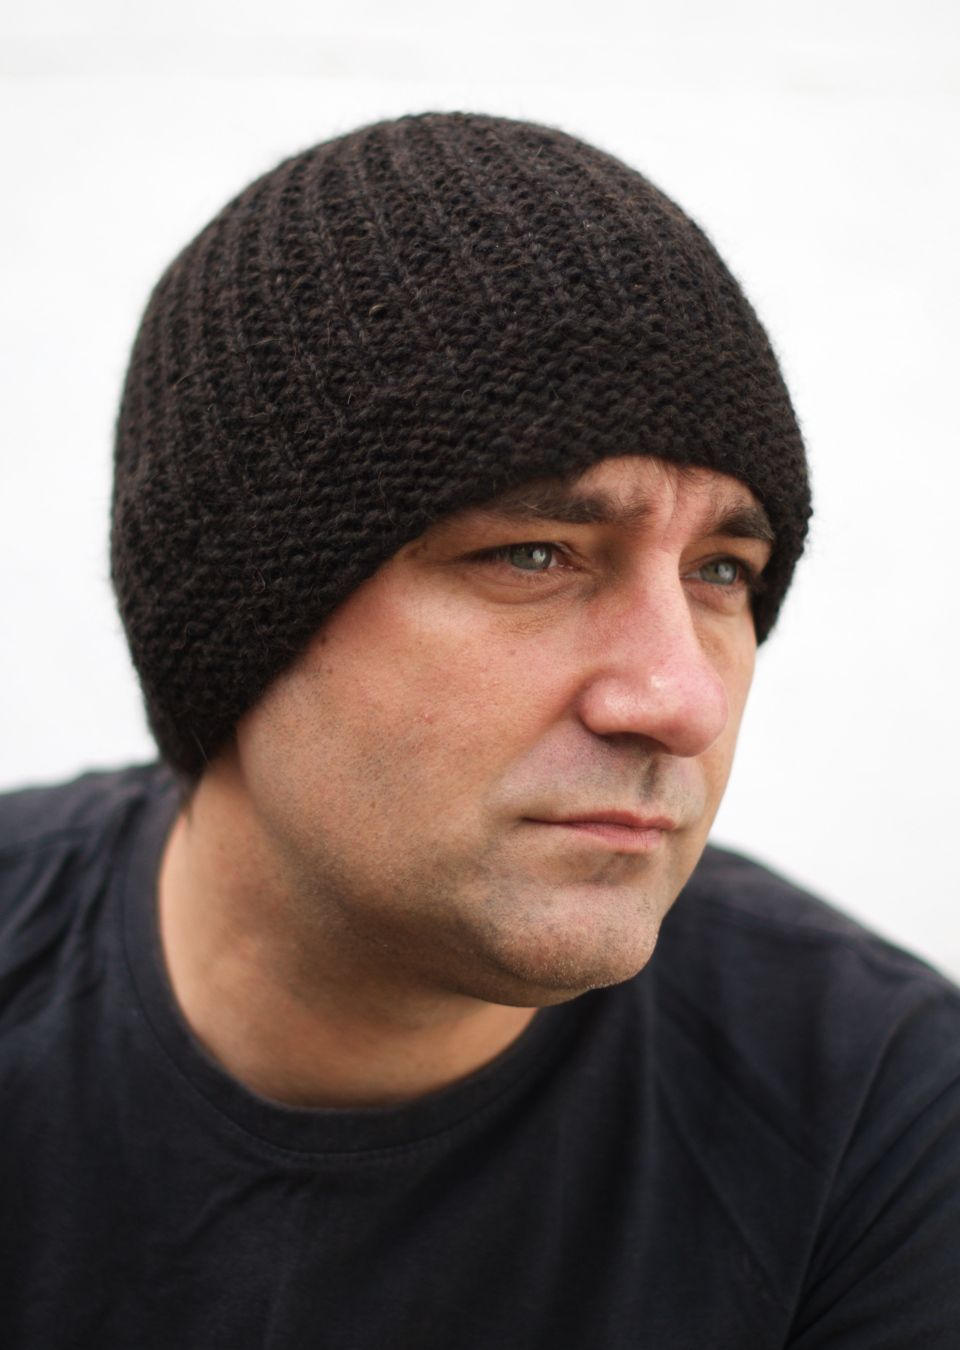 Geko Mens Beanie Hat Kit - designed by the super talented Woolly Wormhead, th...